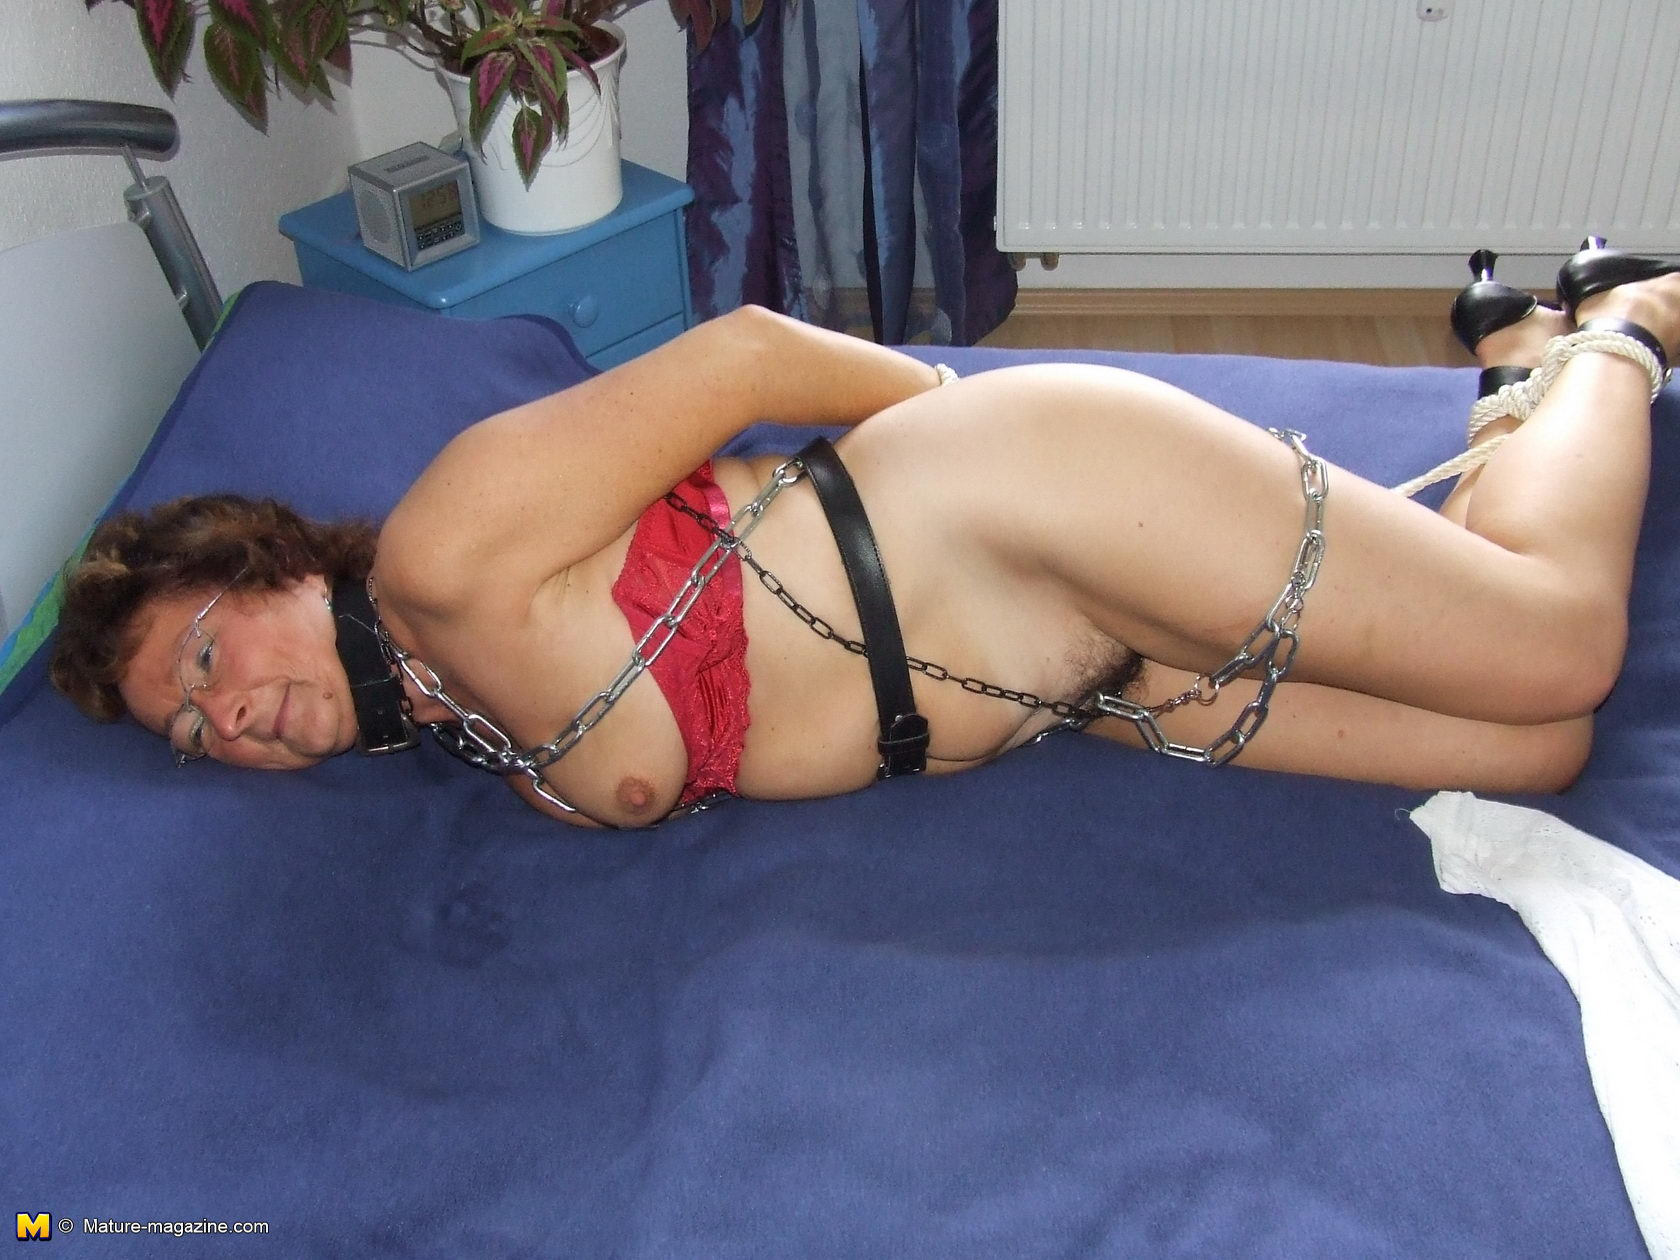 Mature sex tied up pics